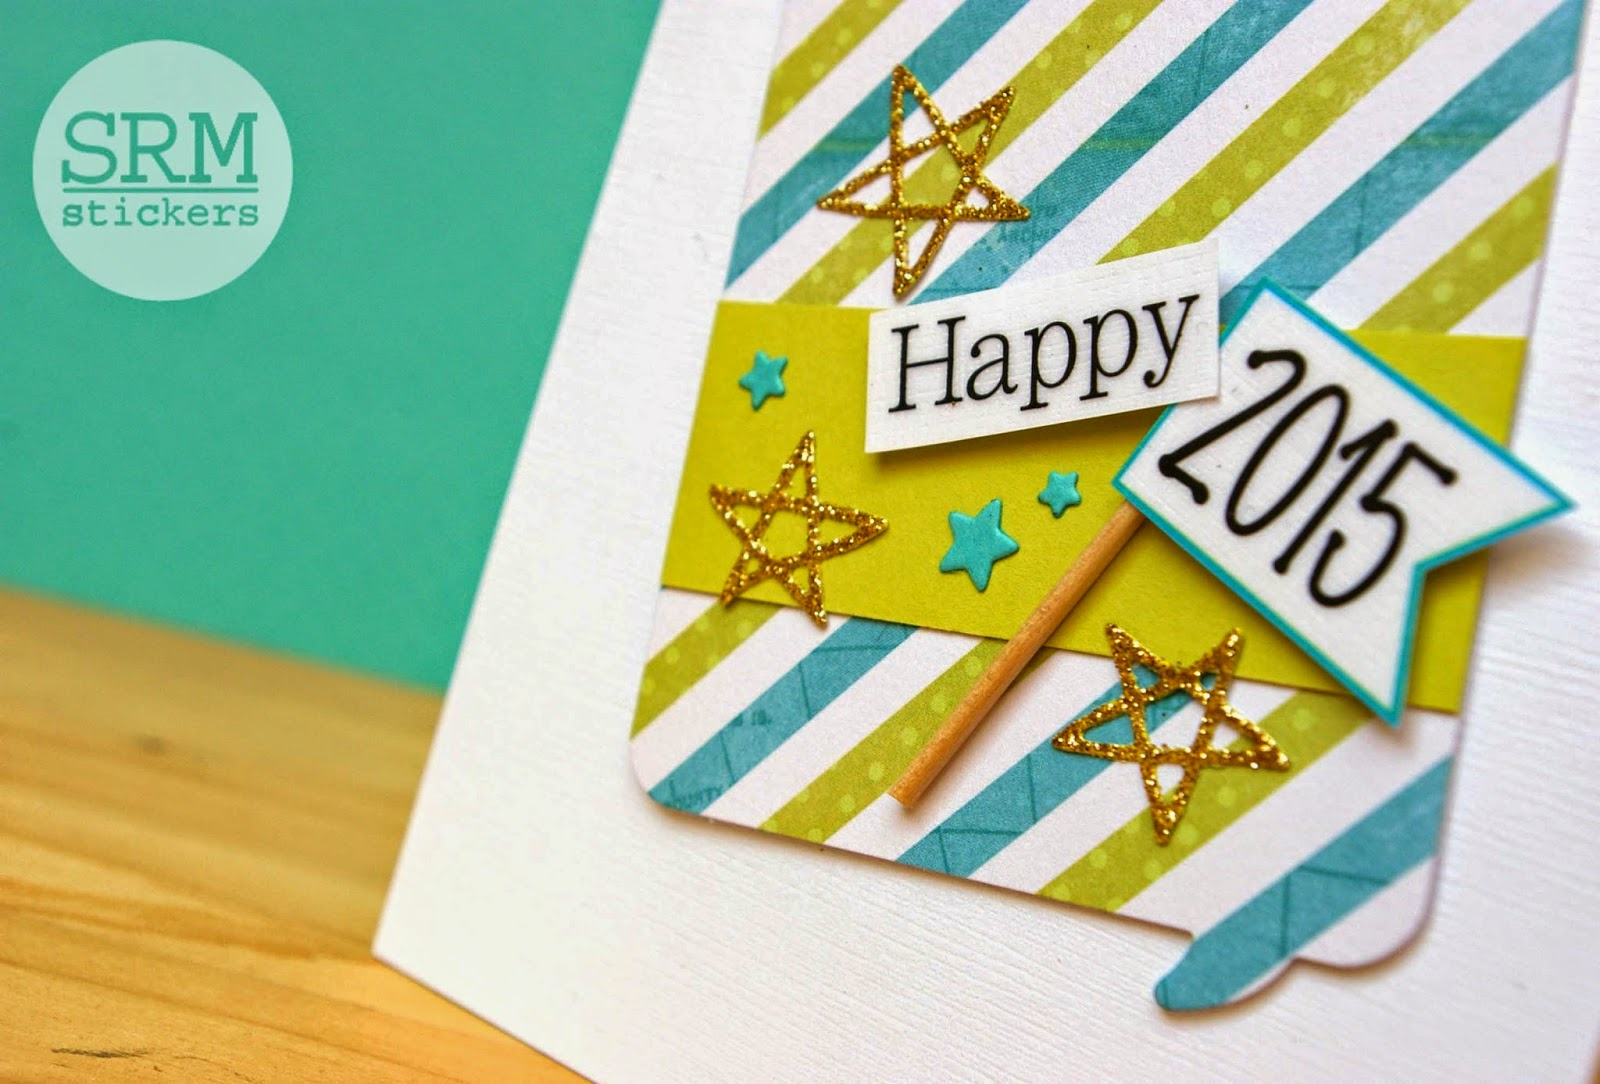 SRM Stickers Blogspot - Happy 2015 Card by Lorena - #card #2015 #newyears #stickers